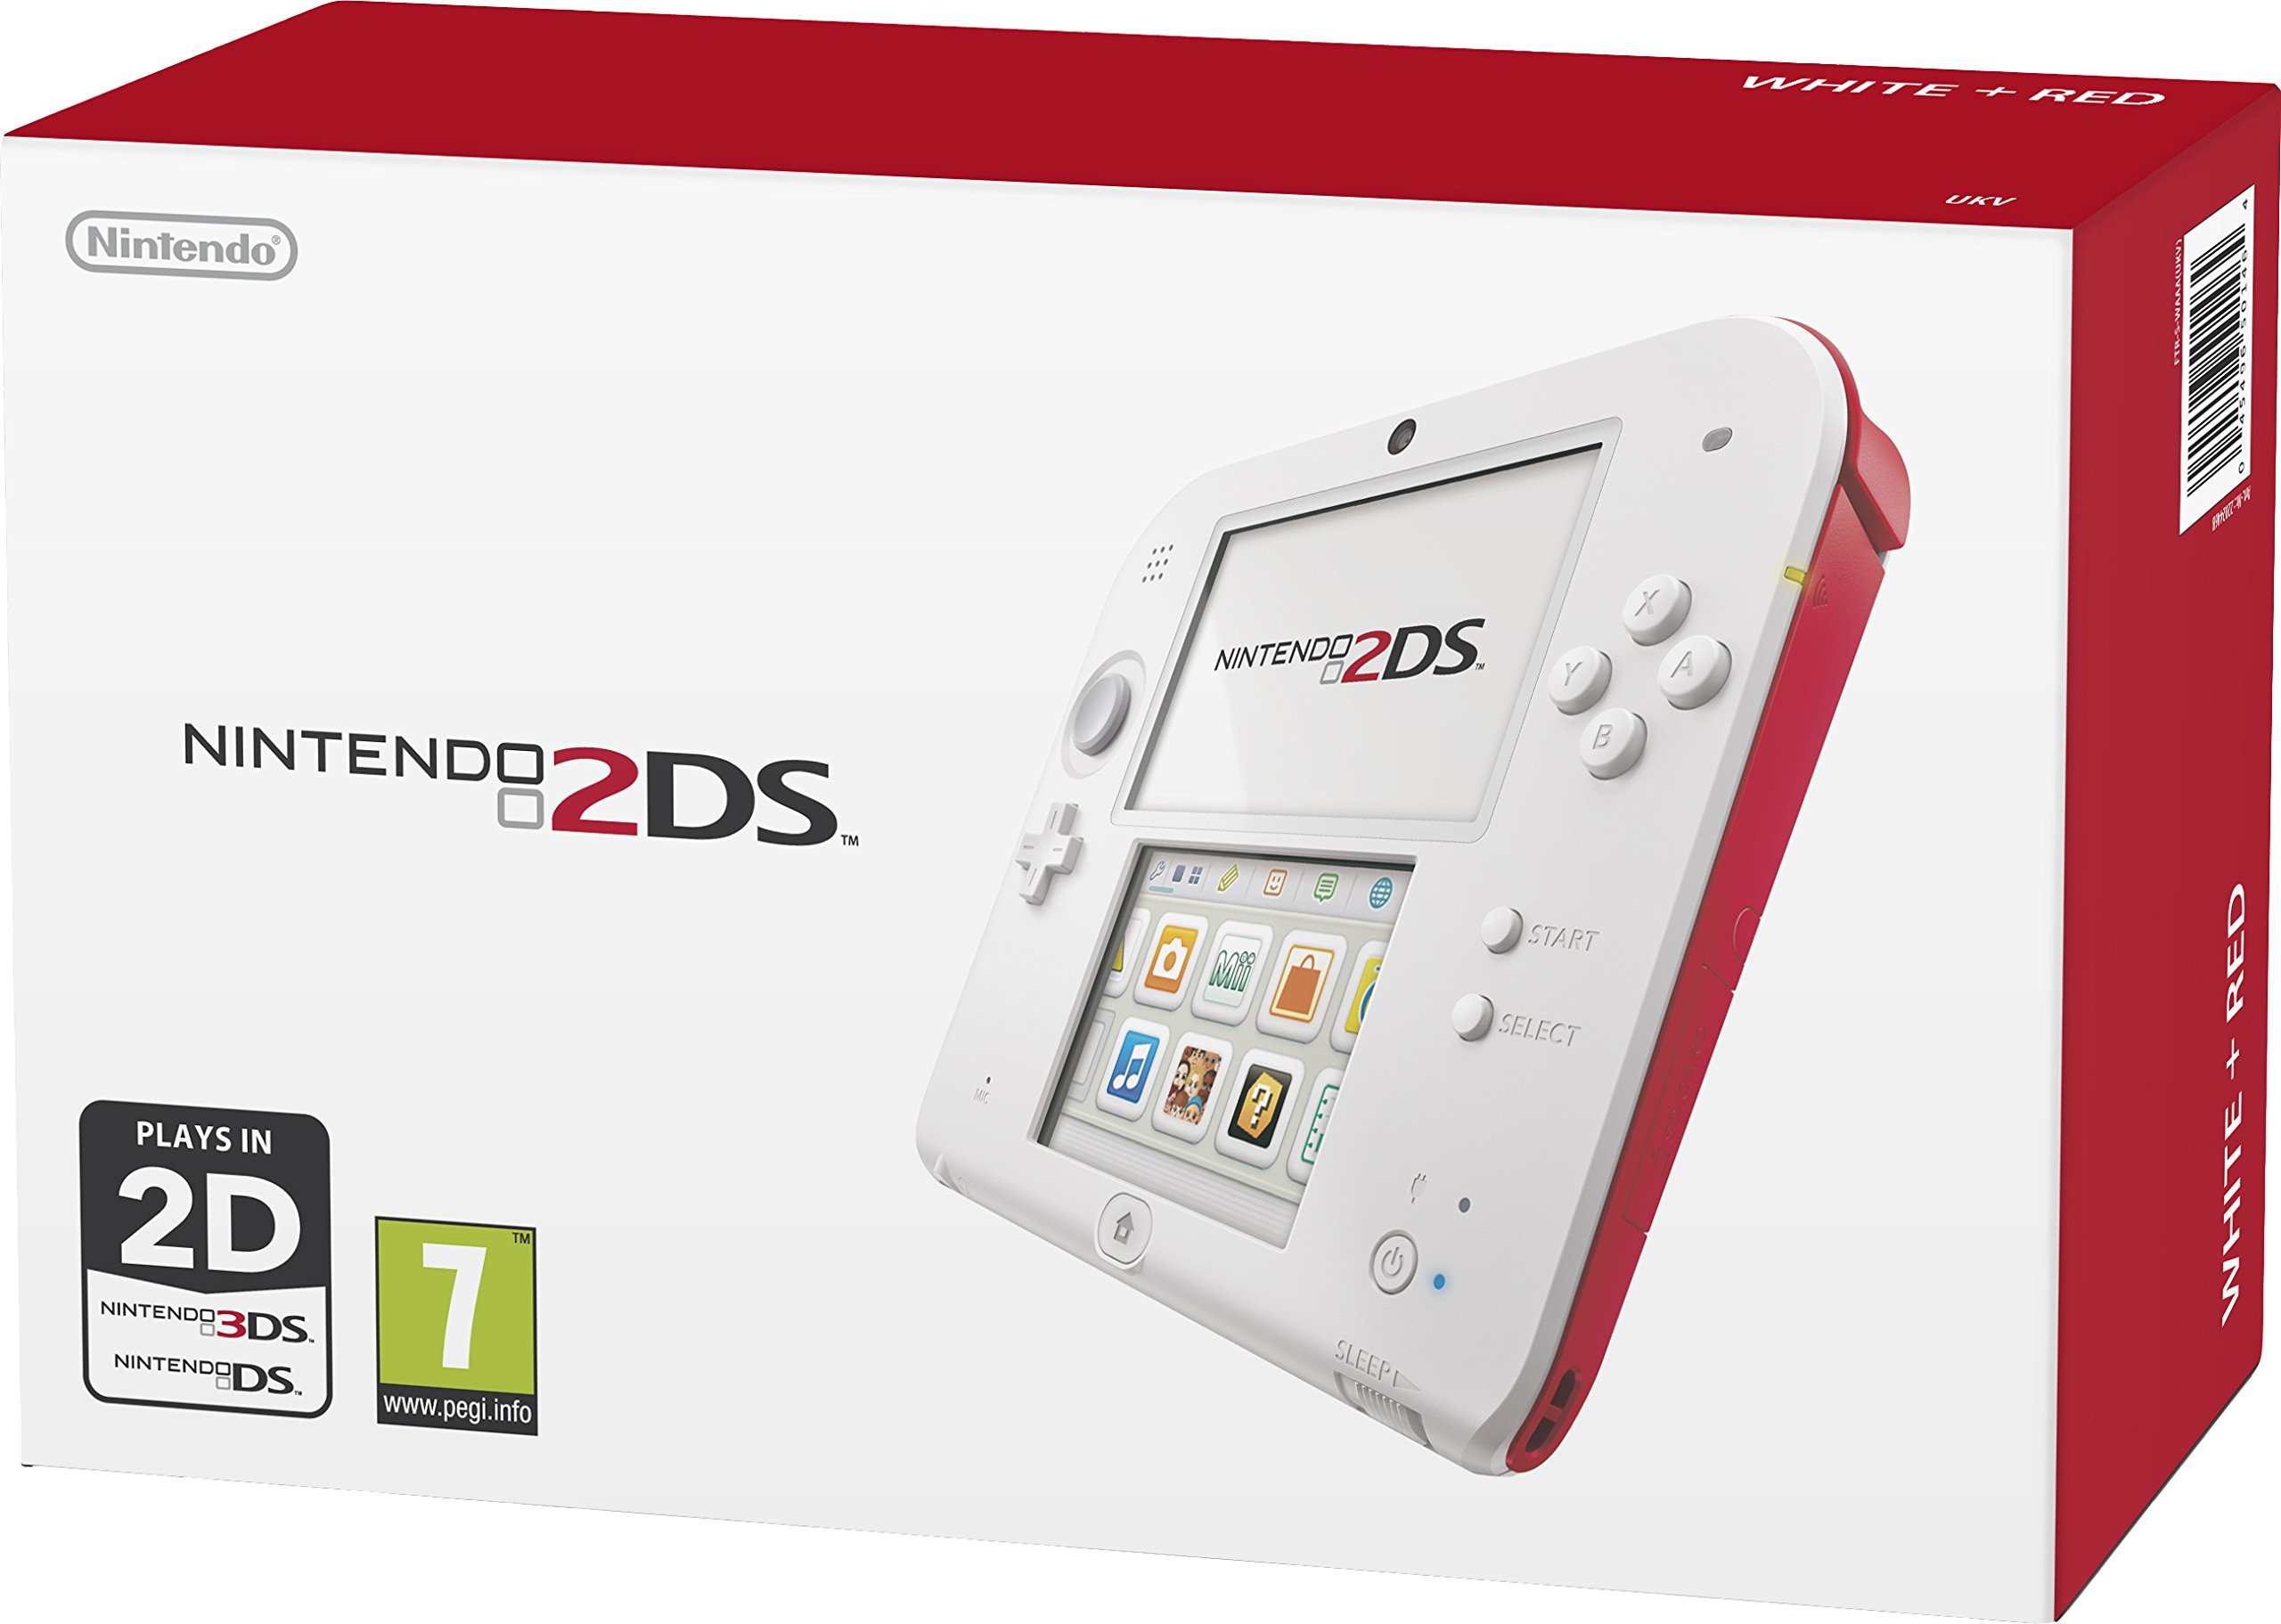 Nintendo Handheld Console 2Ds - White/Red